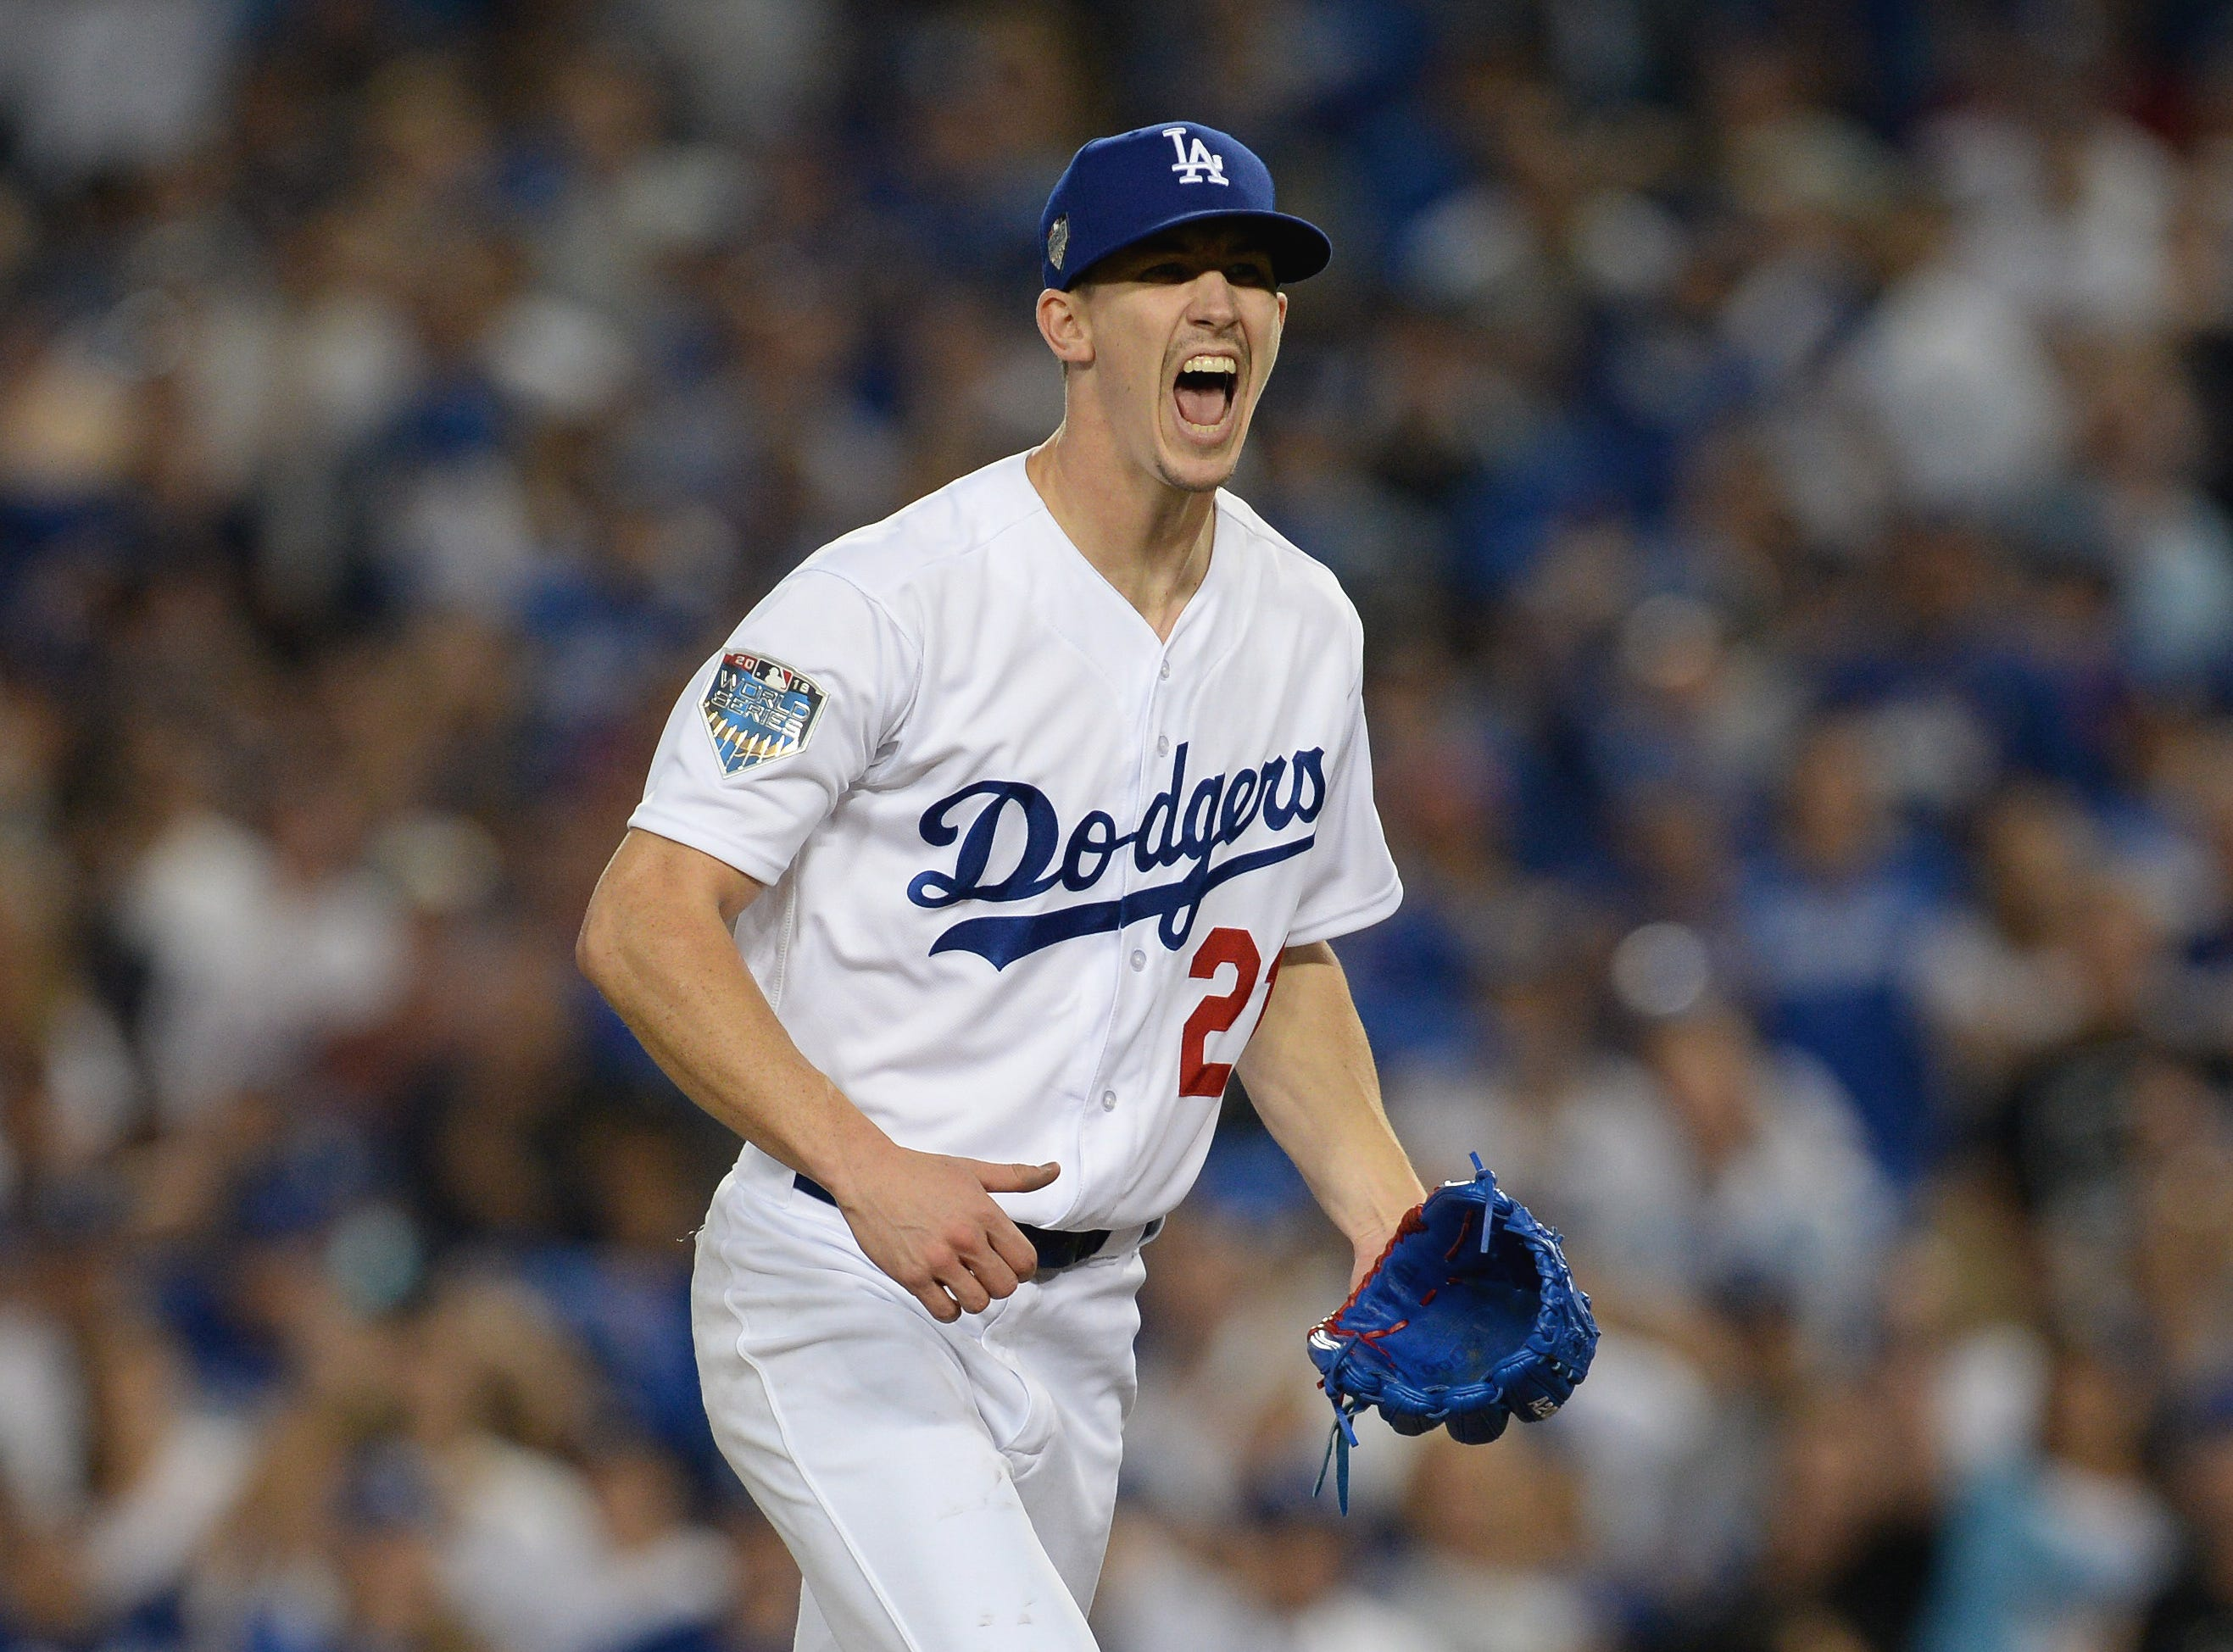 43. Walker Buehler, Los Angeles Dodgers starting pitcher.